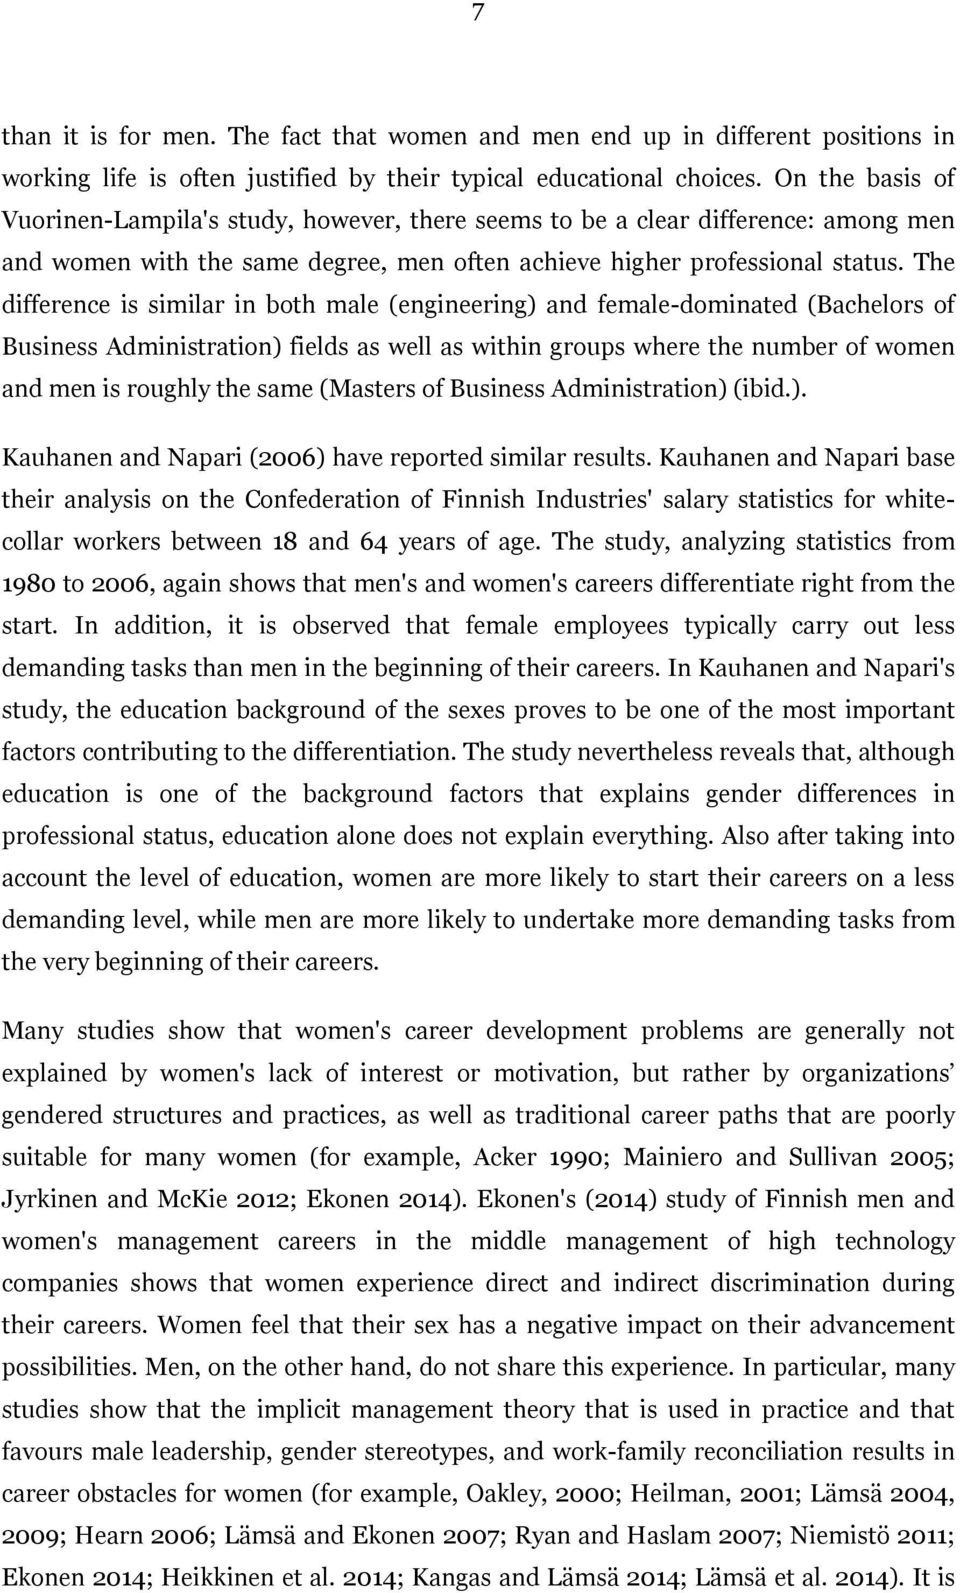 The difference is similar in both male (engineering) and female-dominated (Bachelors of Business Administration) fields as well as within groups where the number of women and men is roughly the same